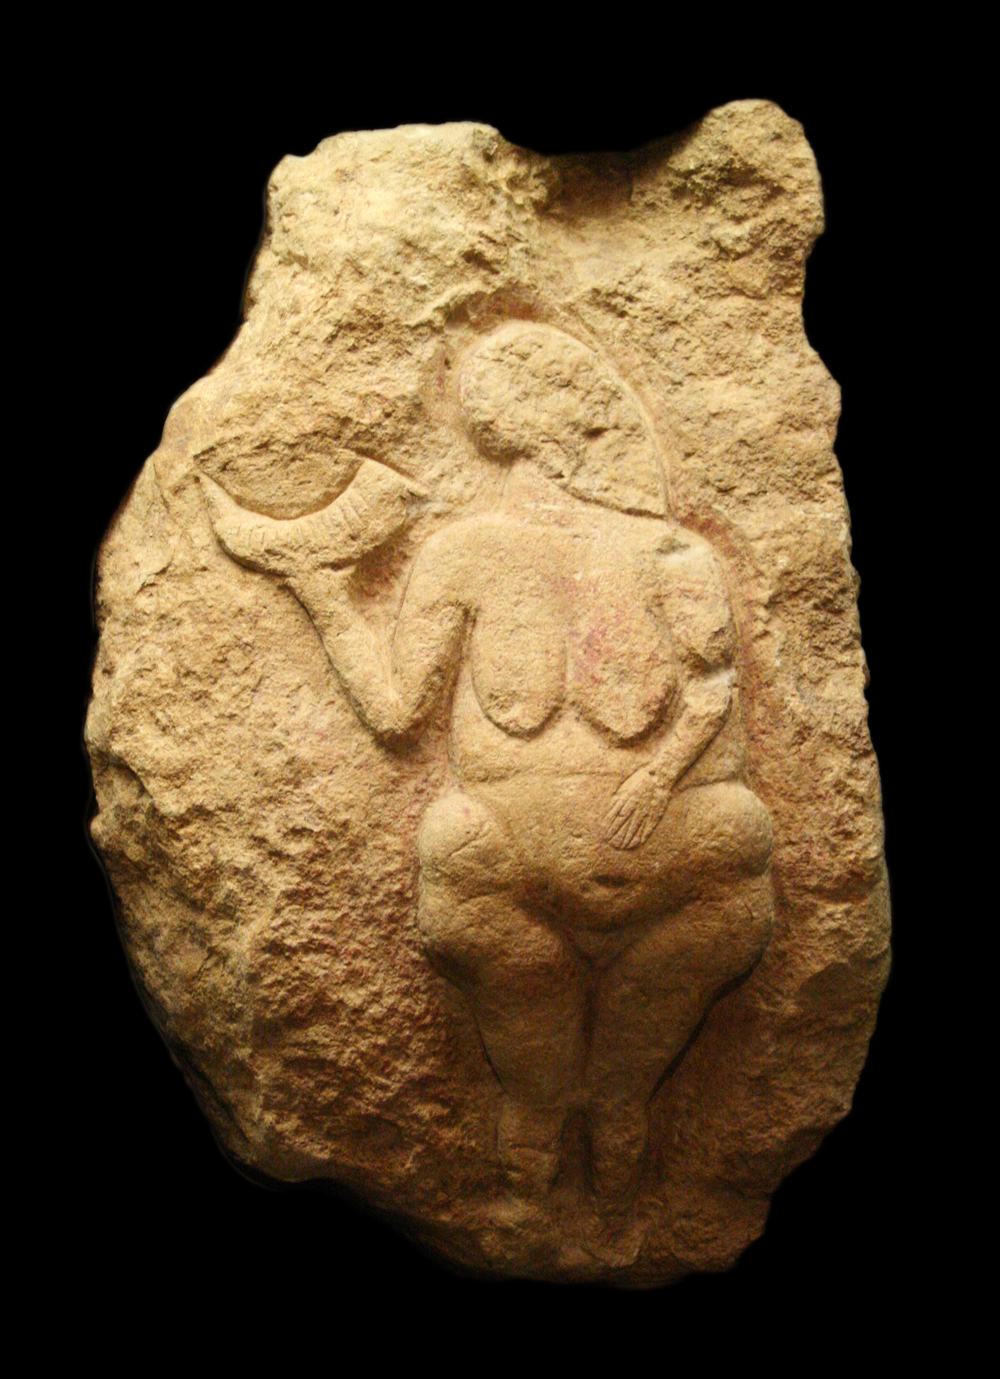 venus of laussel - wikipedia